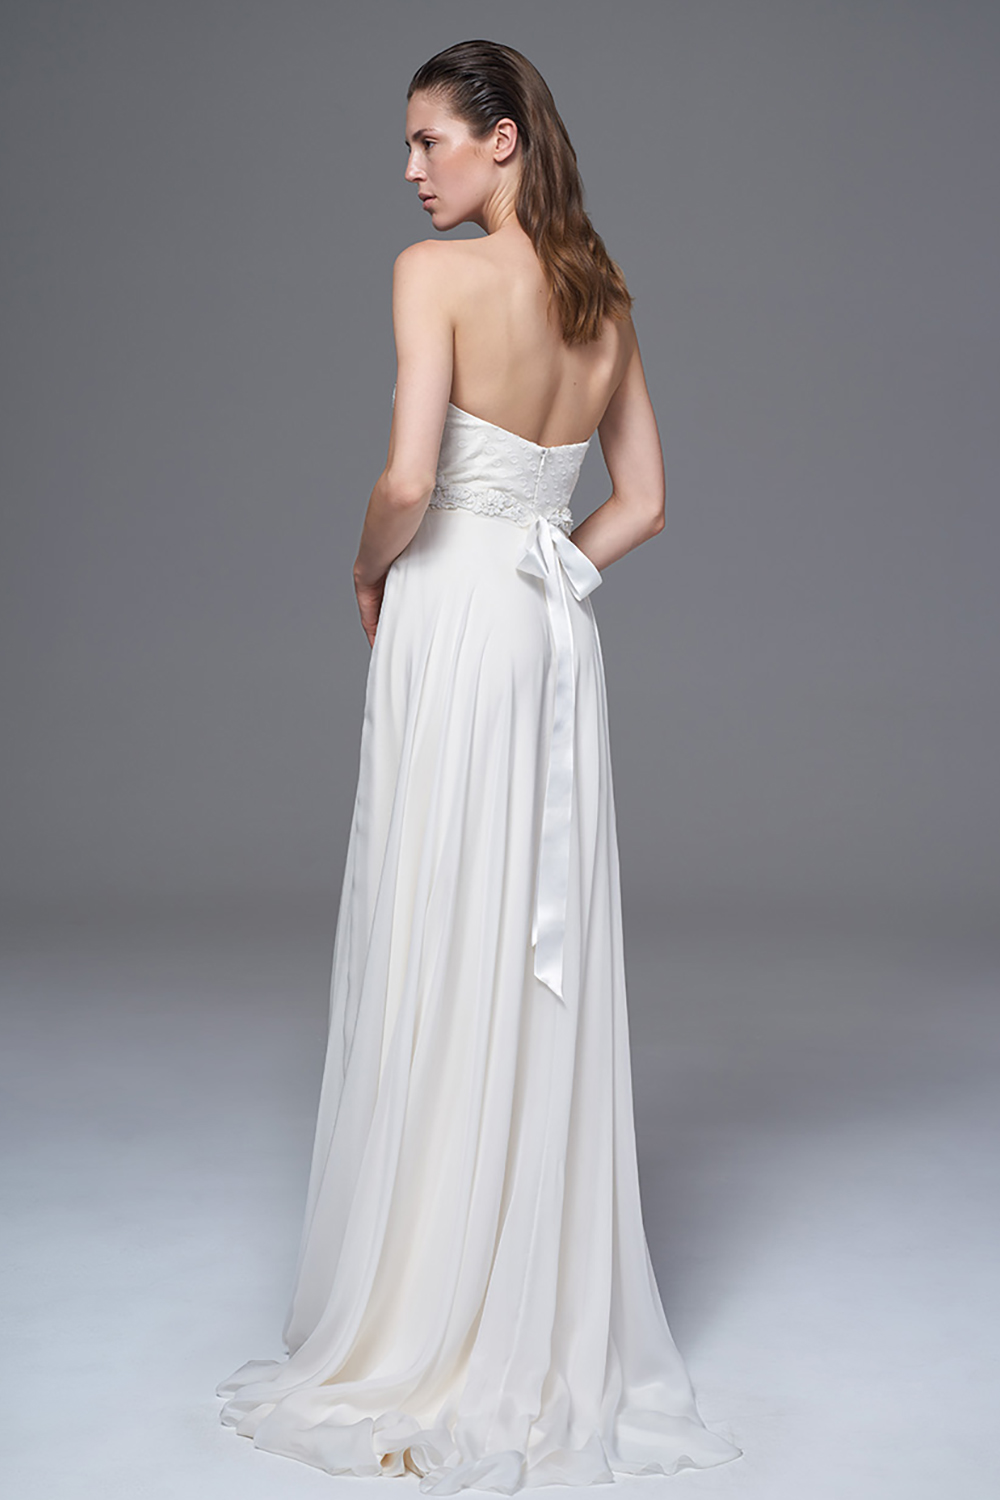 THE ELKE POLKA DOT AND CHIFFON STRAPLESS DRESS WORN WITH THE IVORY JESSICA BELT. BRIDAL WEDDING DRESS BY HALFPENNY LONDON